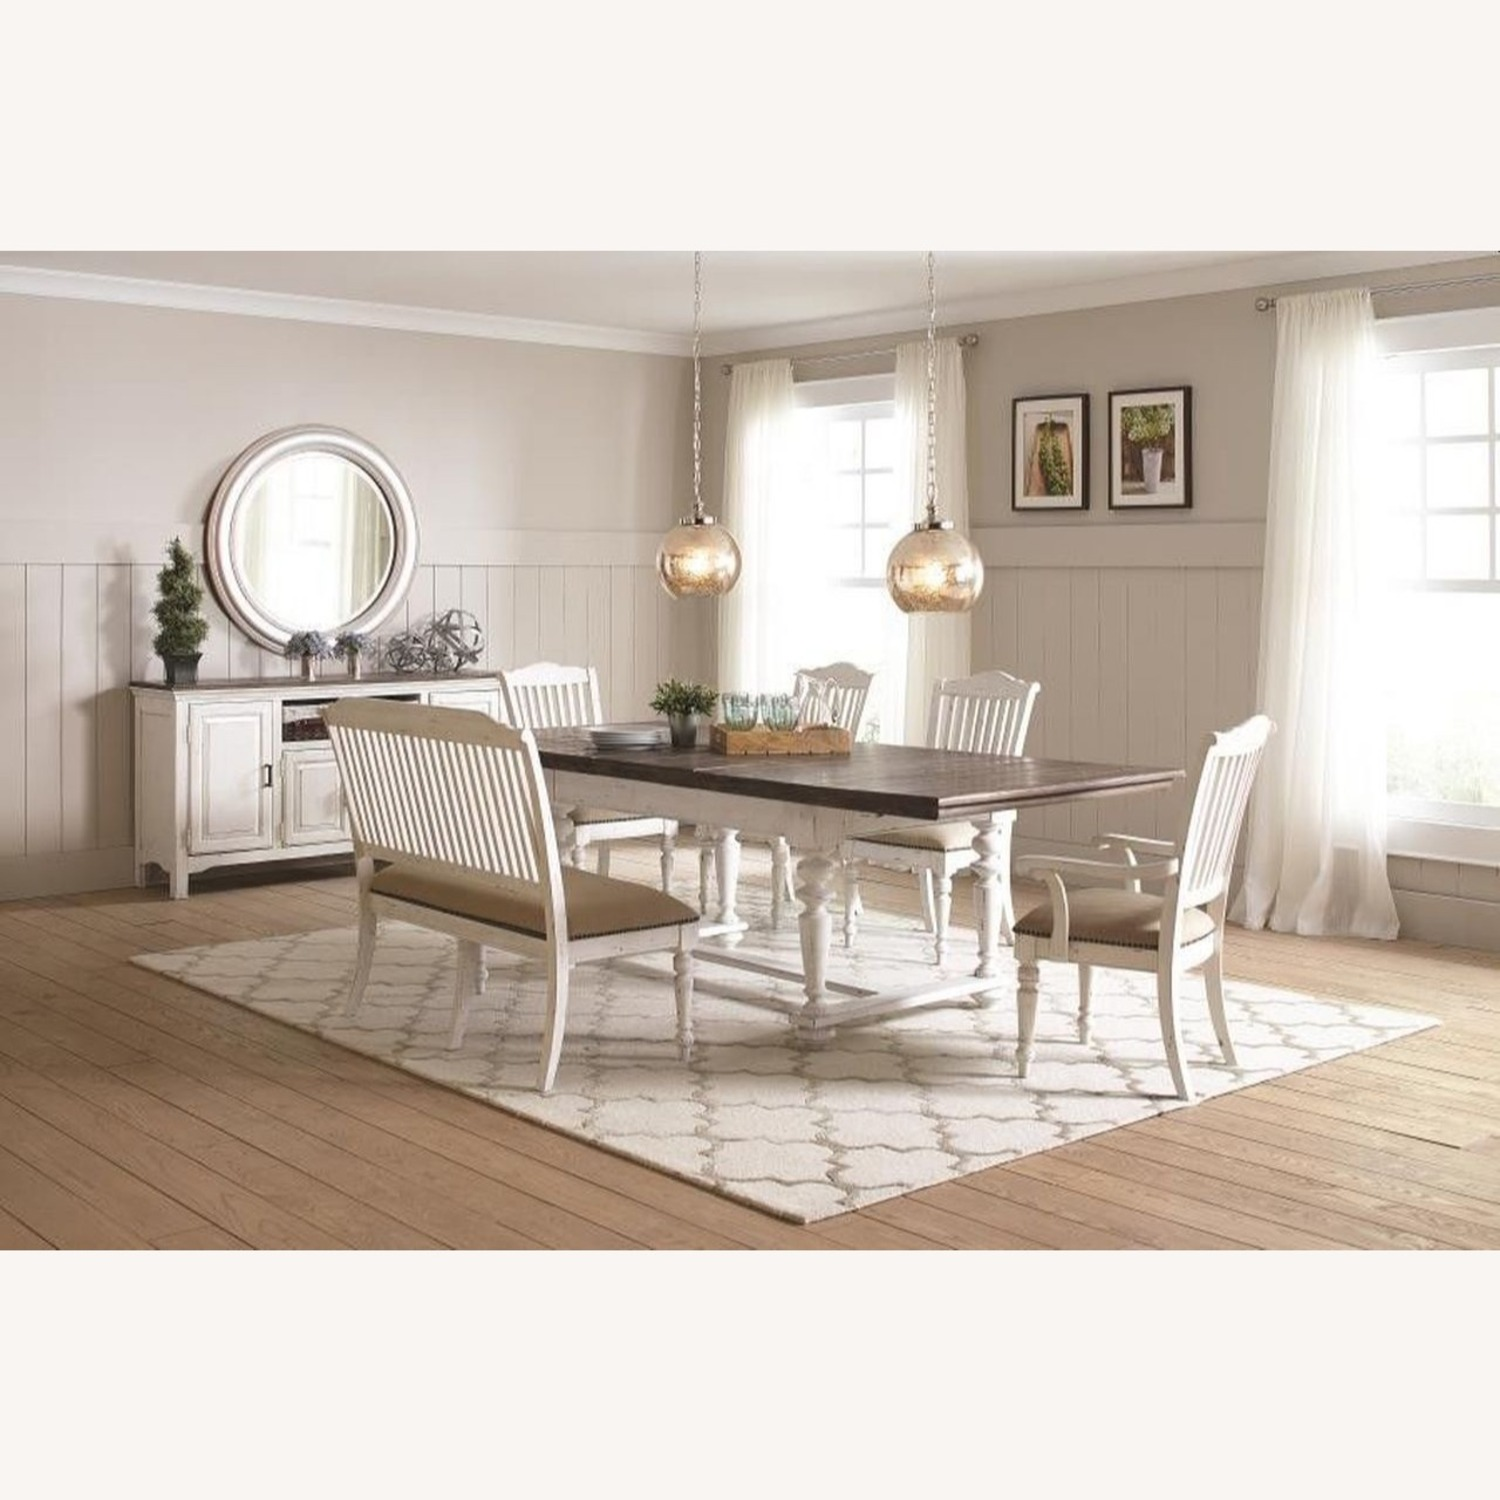 Rustic Dining Table In Vintage White - image-2